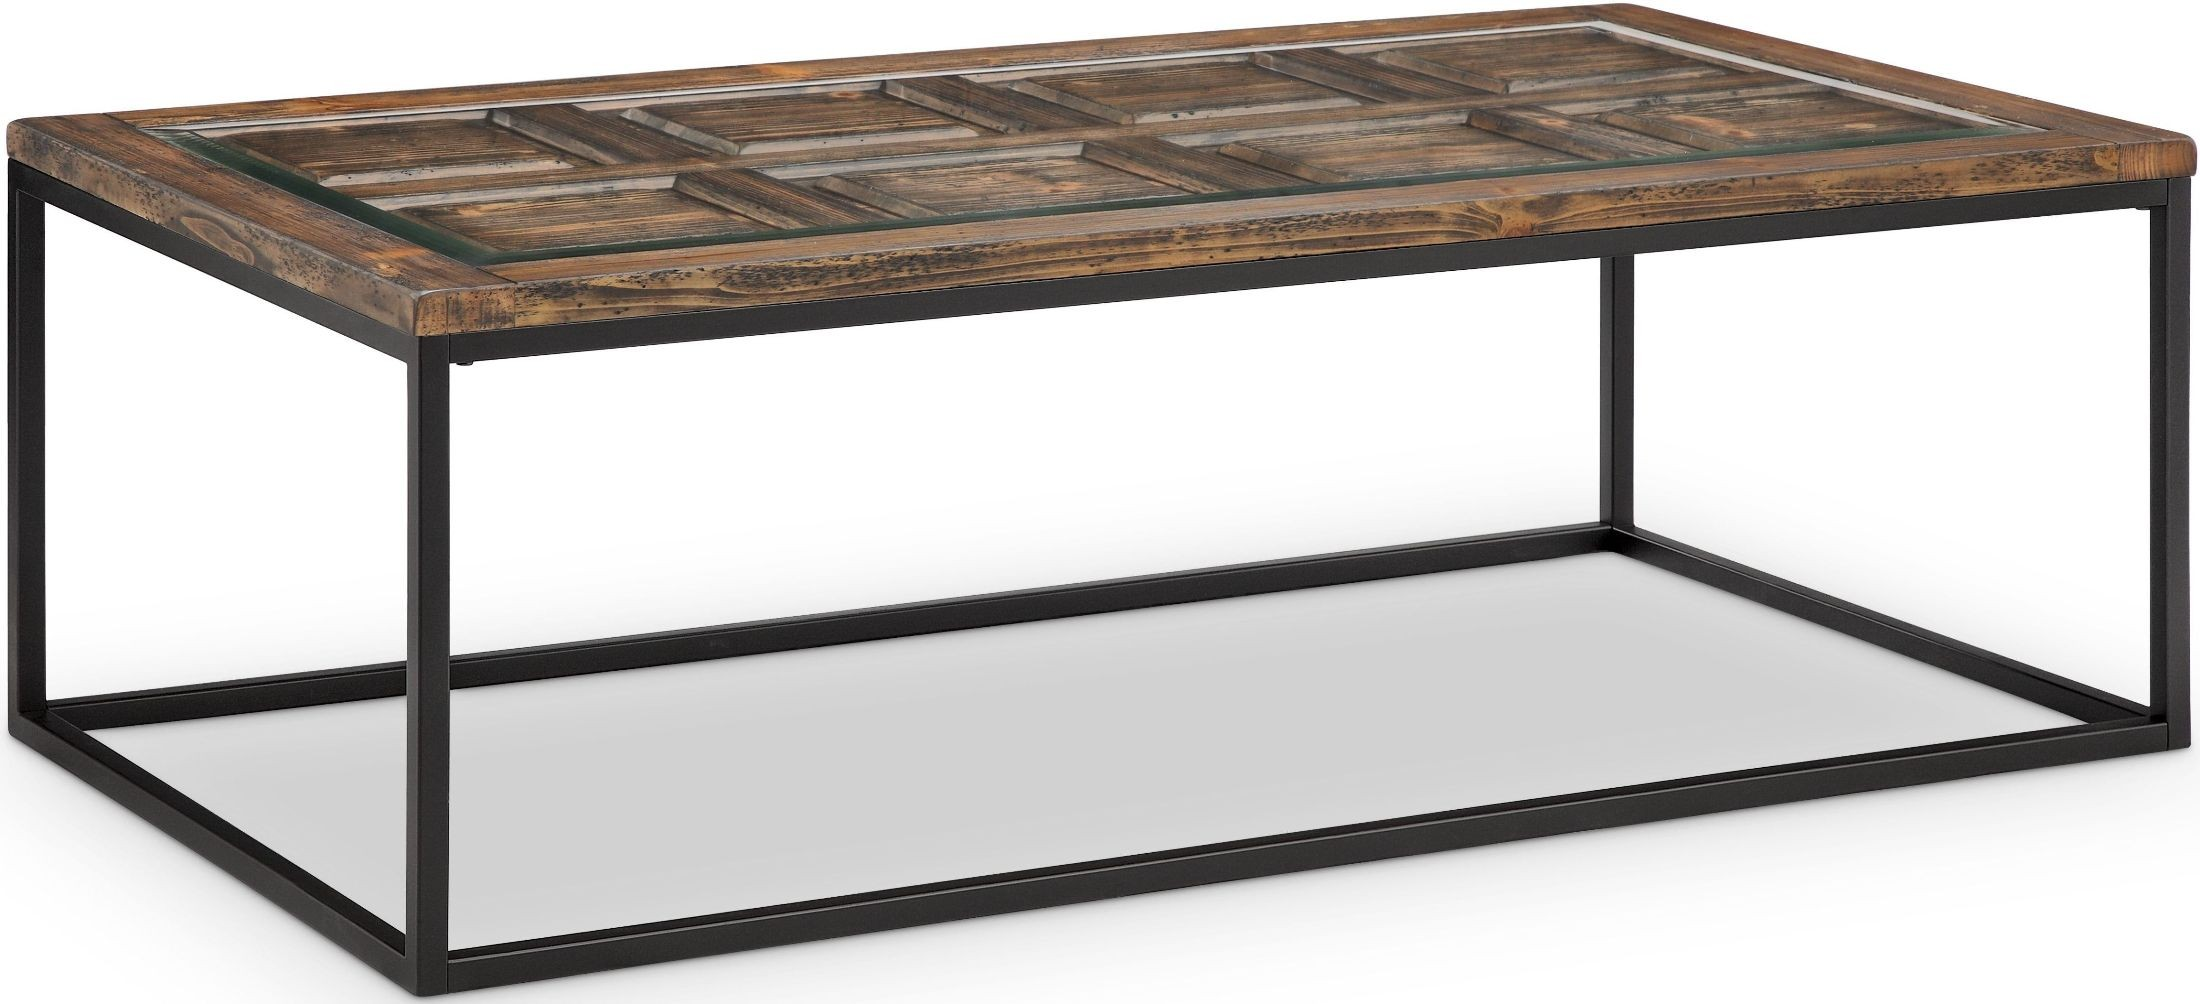 Rochester Burnished Brown Rectangular Cocktail Table from